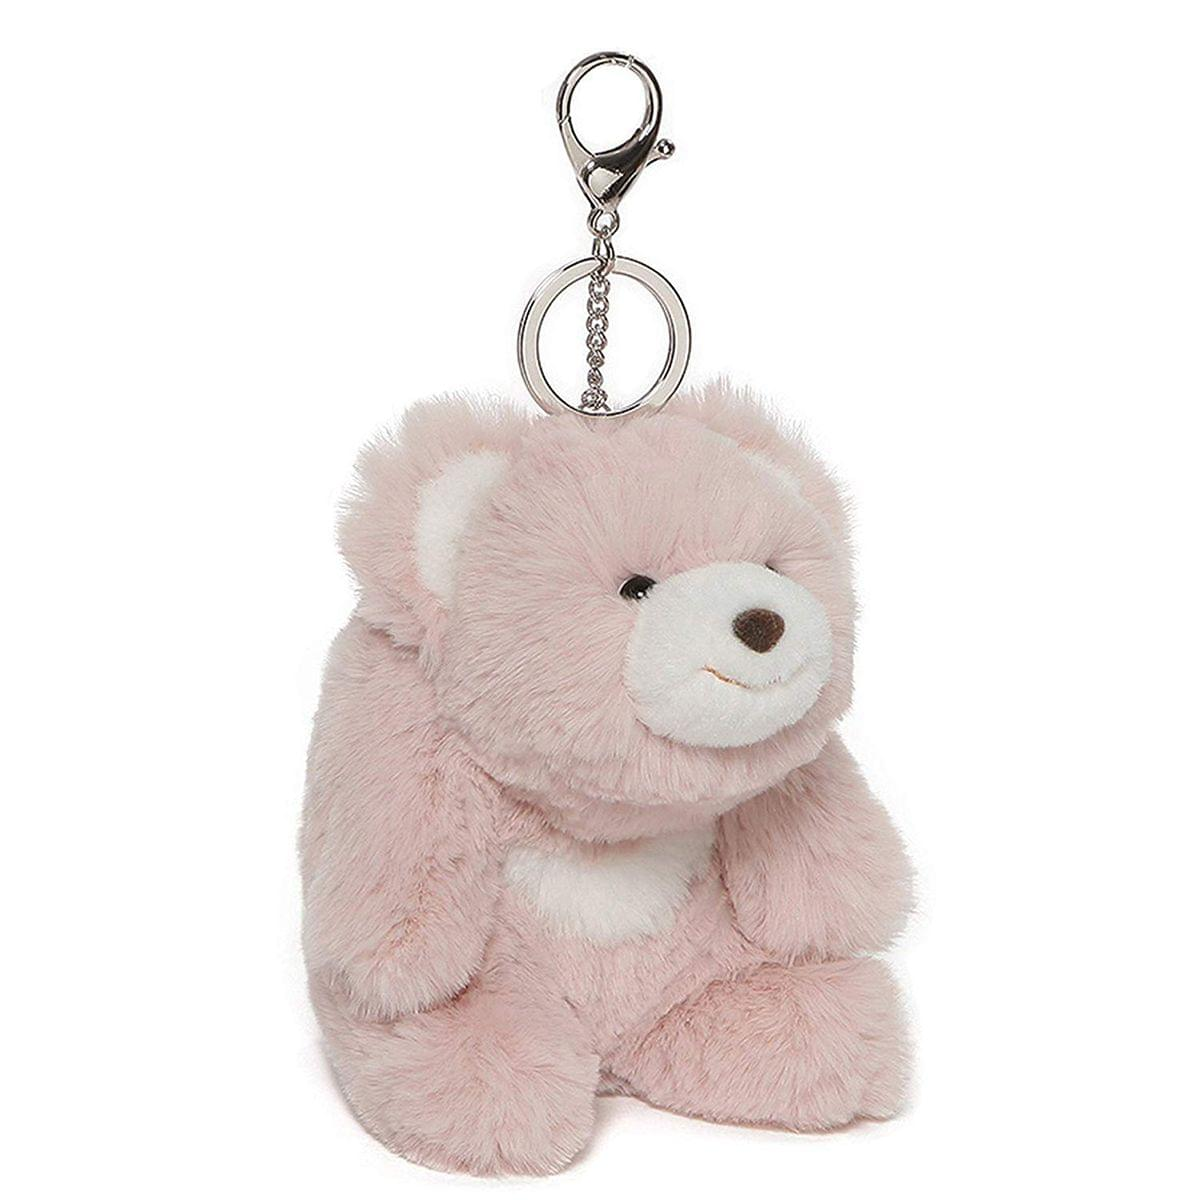 Snuffles the Teddy Bear 5-Inch Plush Keychain | Pink